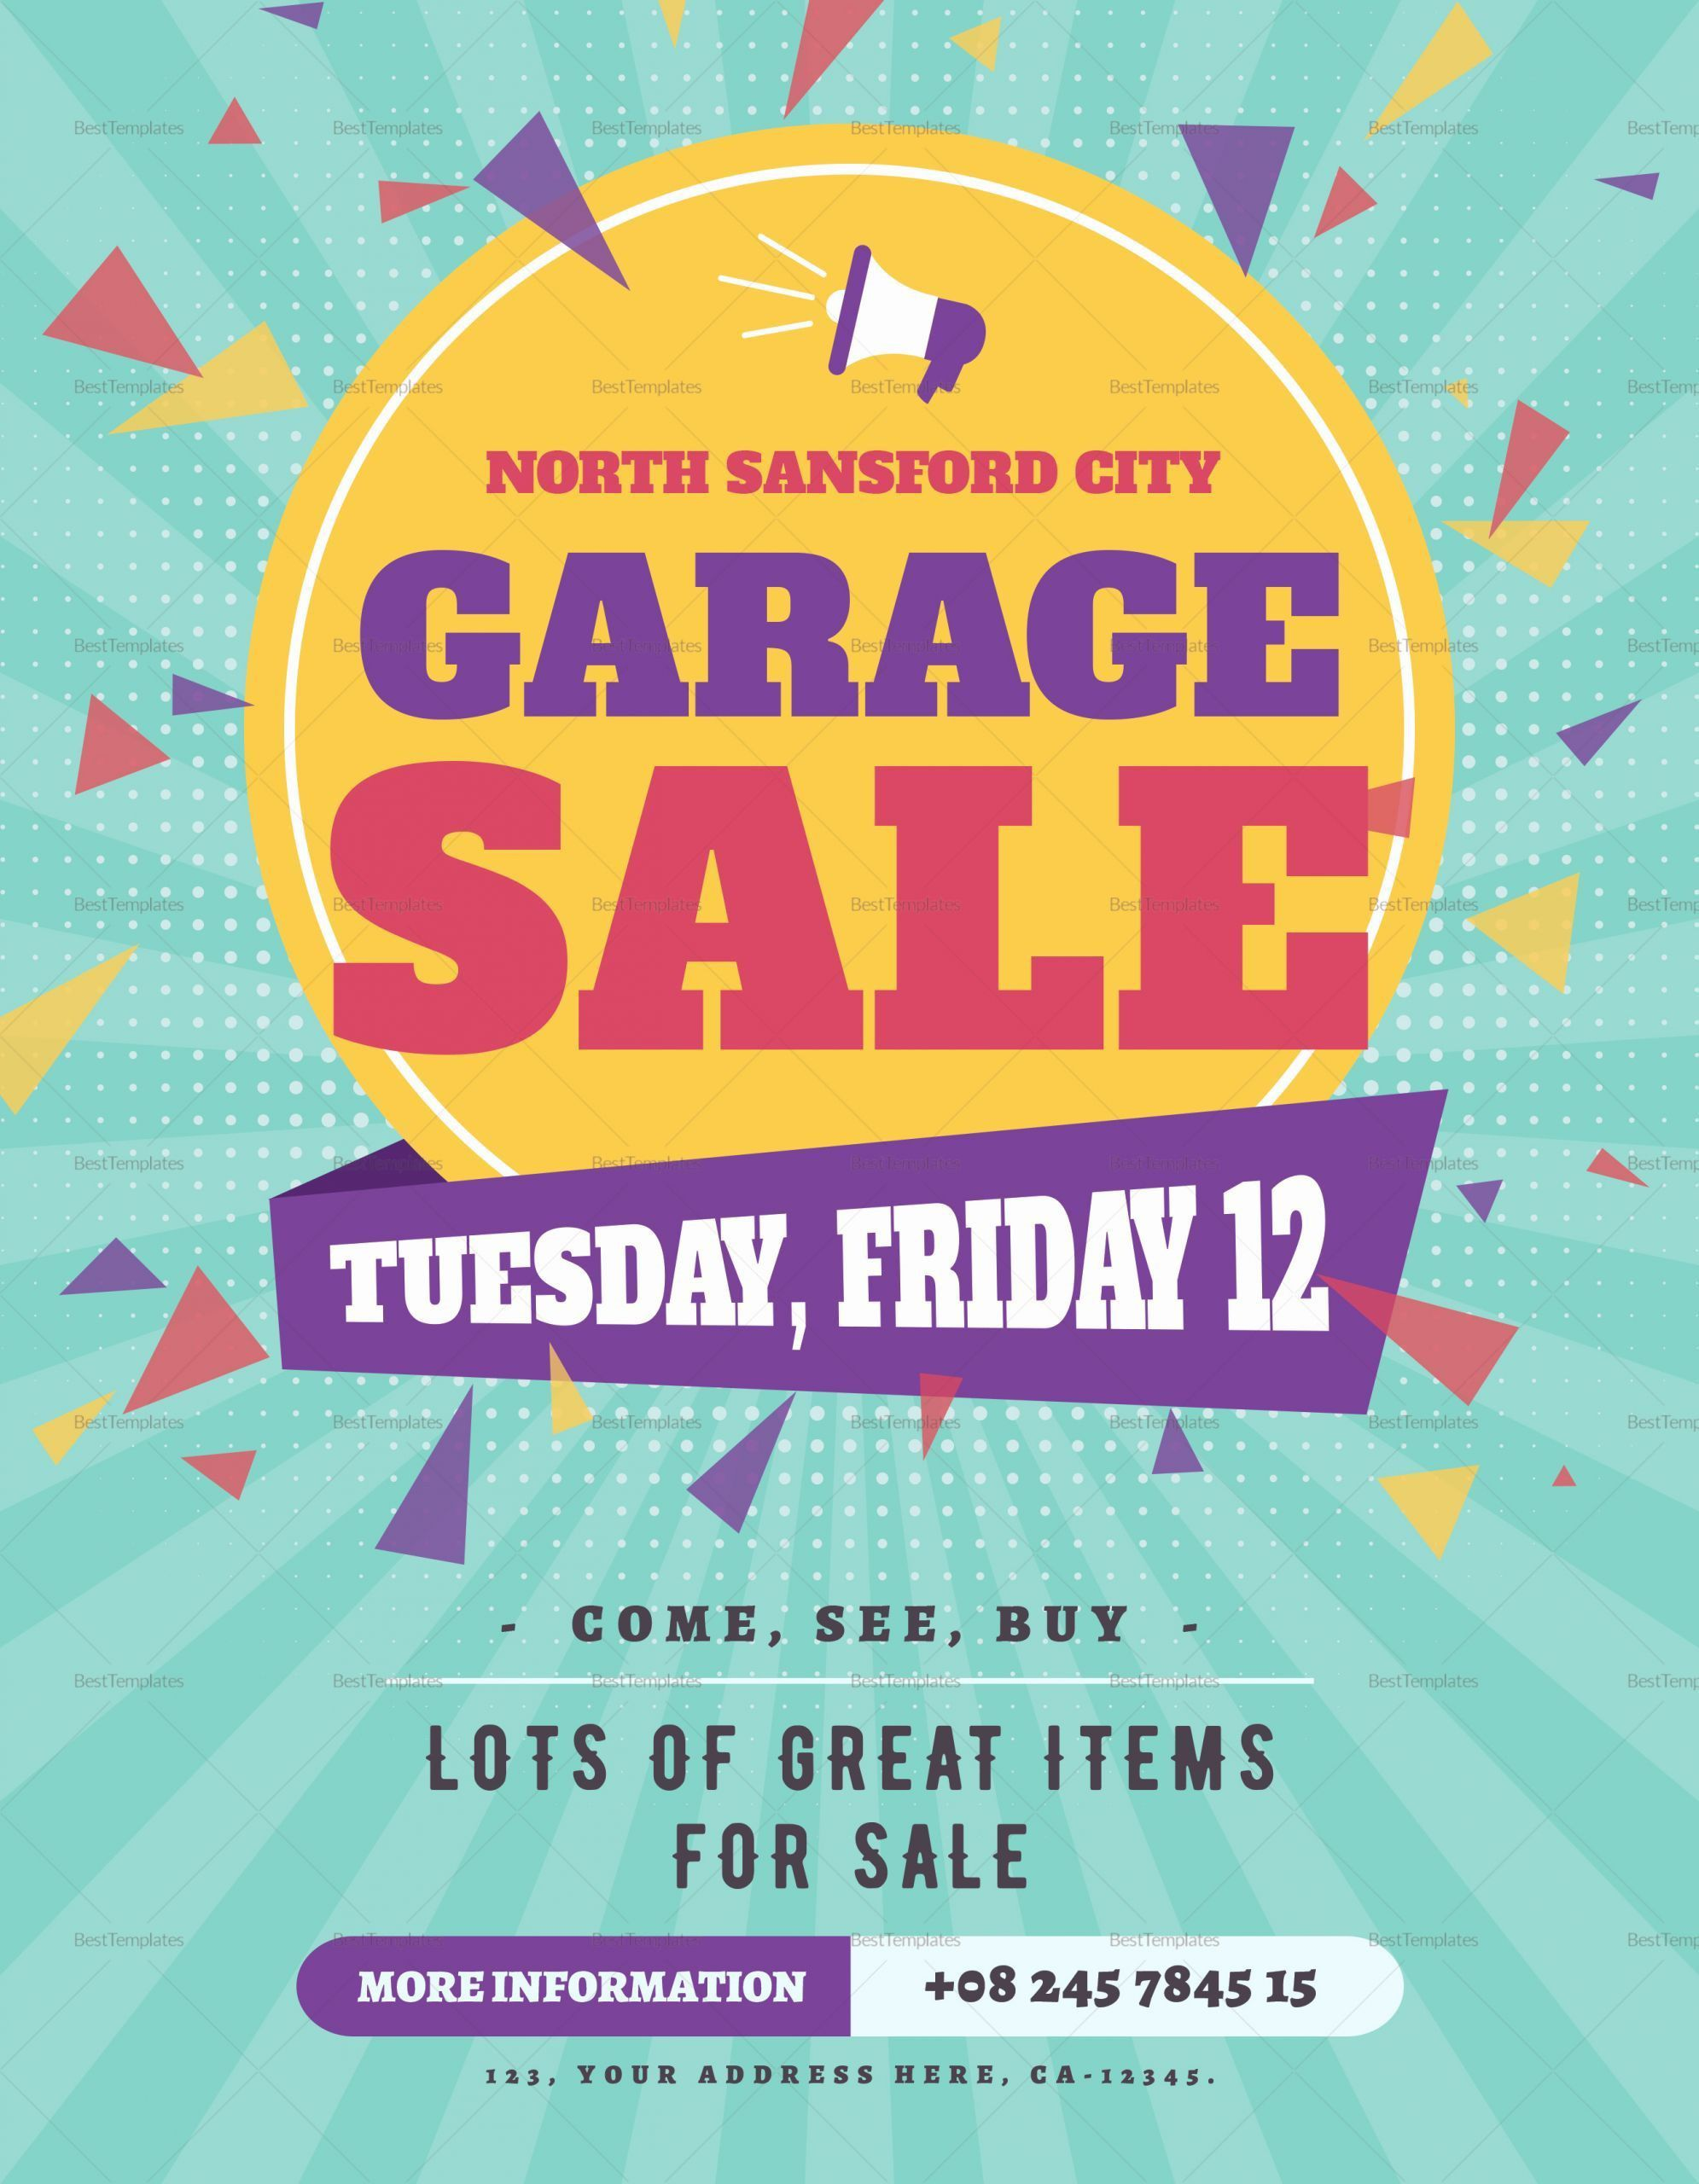 006 Imposing Yard Sale Flyer Template Free High Resolution  Community GarageFull